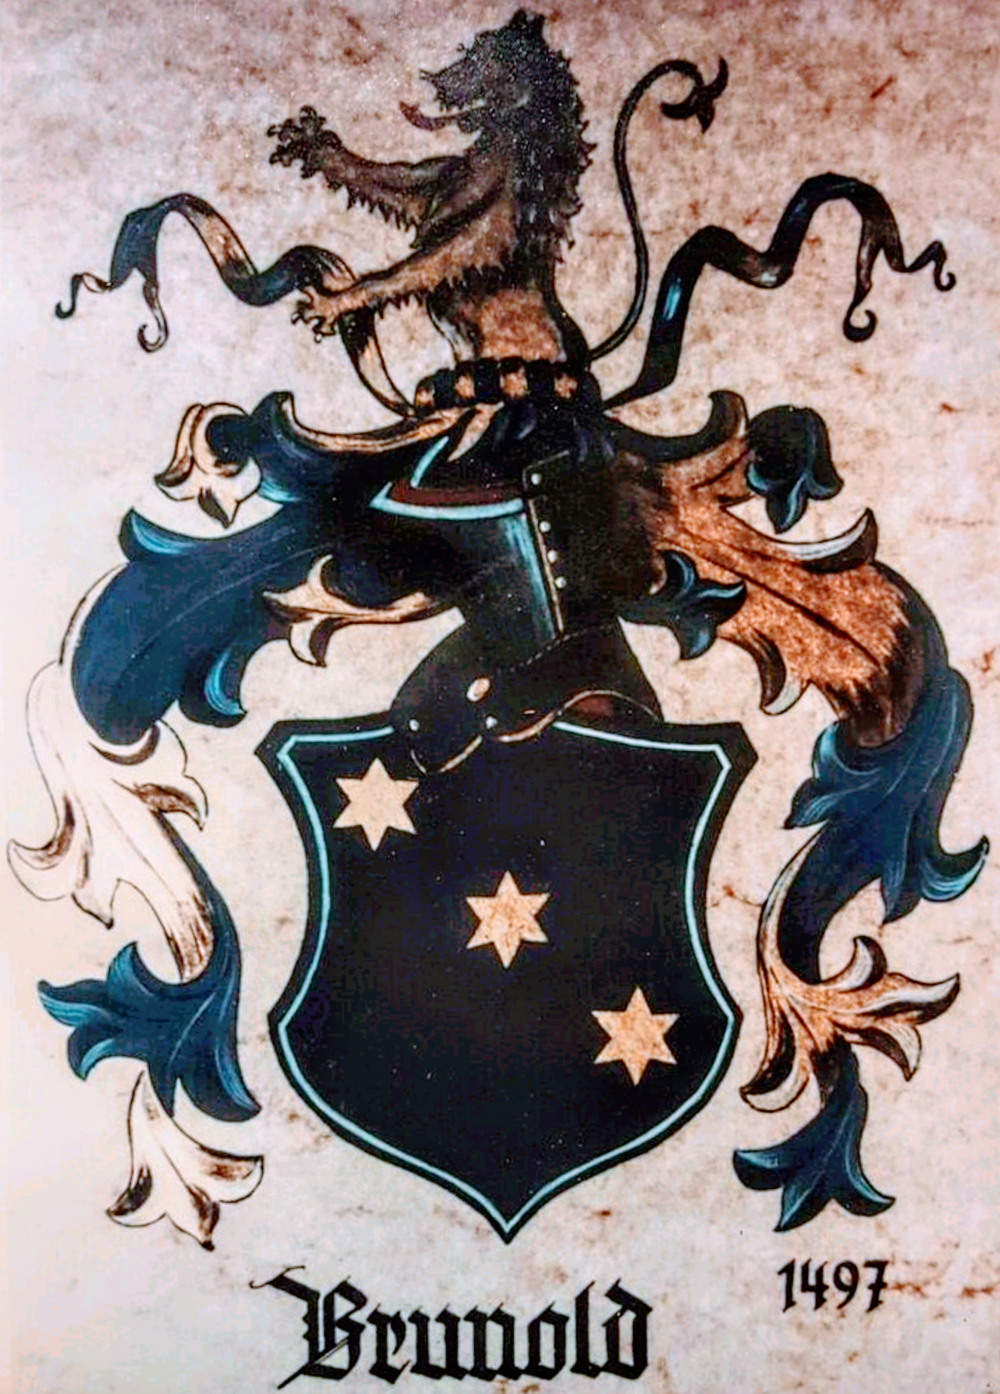 COAT OF ARMs - The Brunold family, whose heraldry serves as the atelier's distinguished logo, is more than 500 years old.